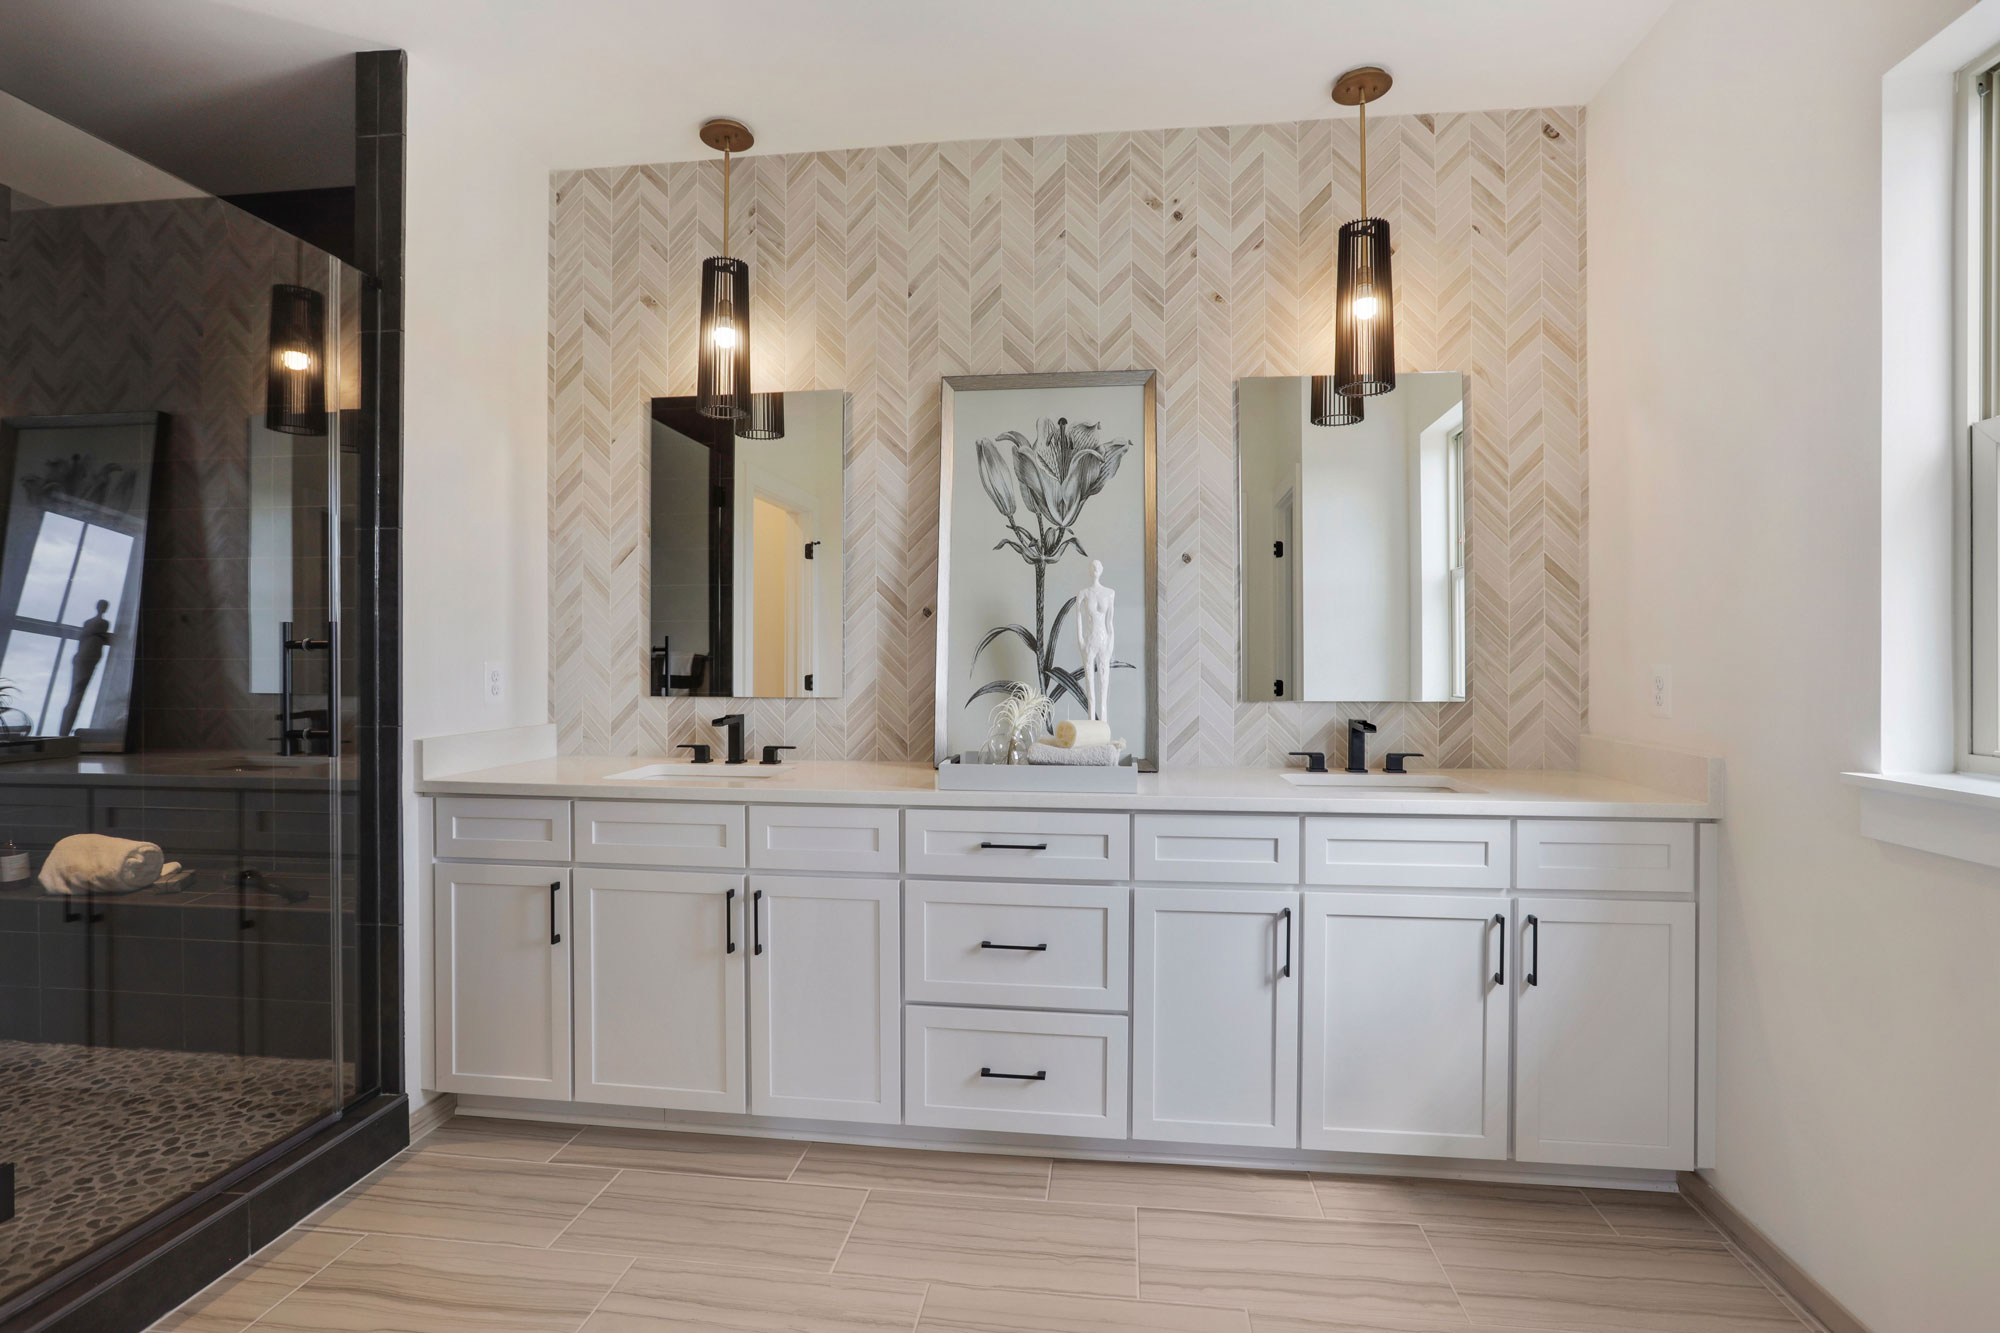 Bathroom, Elevator Townhomes in Gaithersburg, MD, Crown by Craftmark Homes